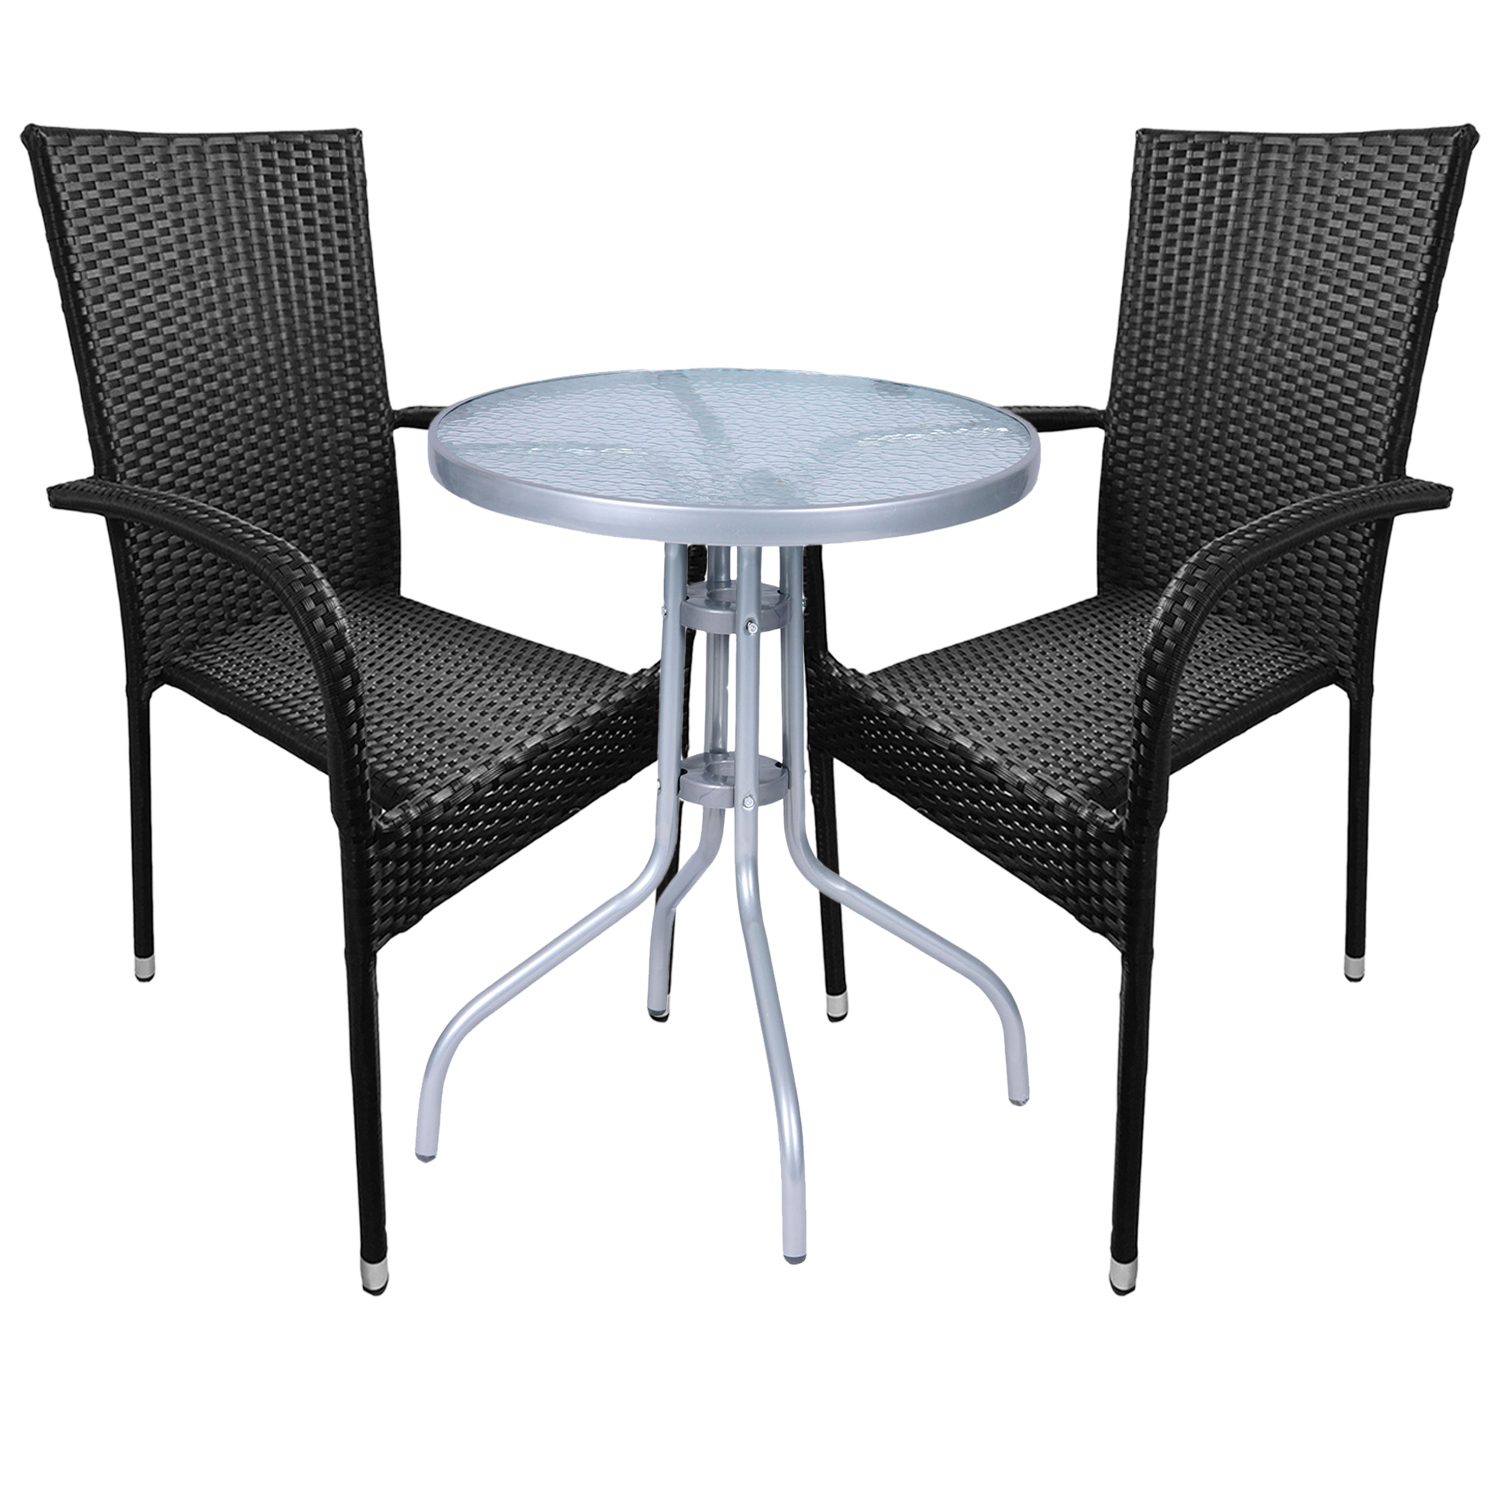 bistro sitzgarnitur bistrogarnitur 3 teilig rattan schwarz garten gartengarnituren. Black Bedroom Furniture Sets. Home Design Ideas